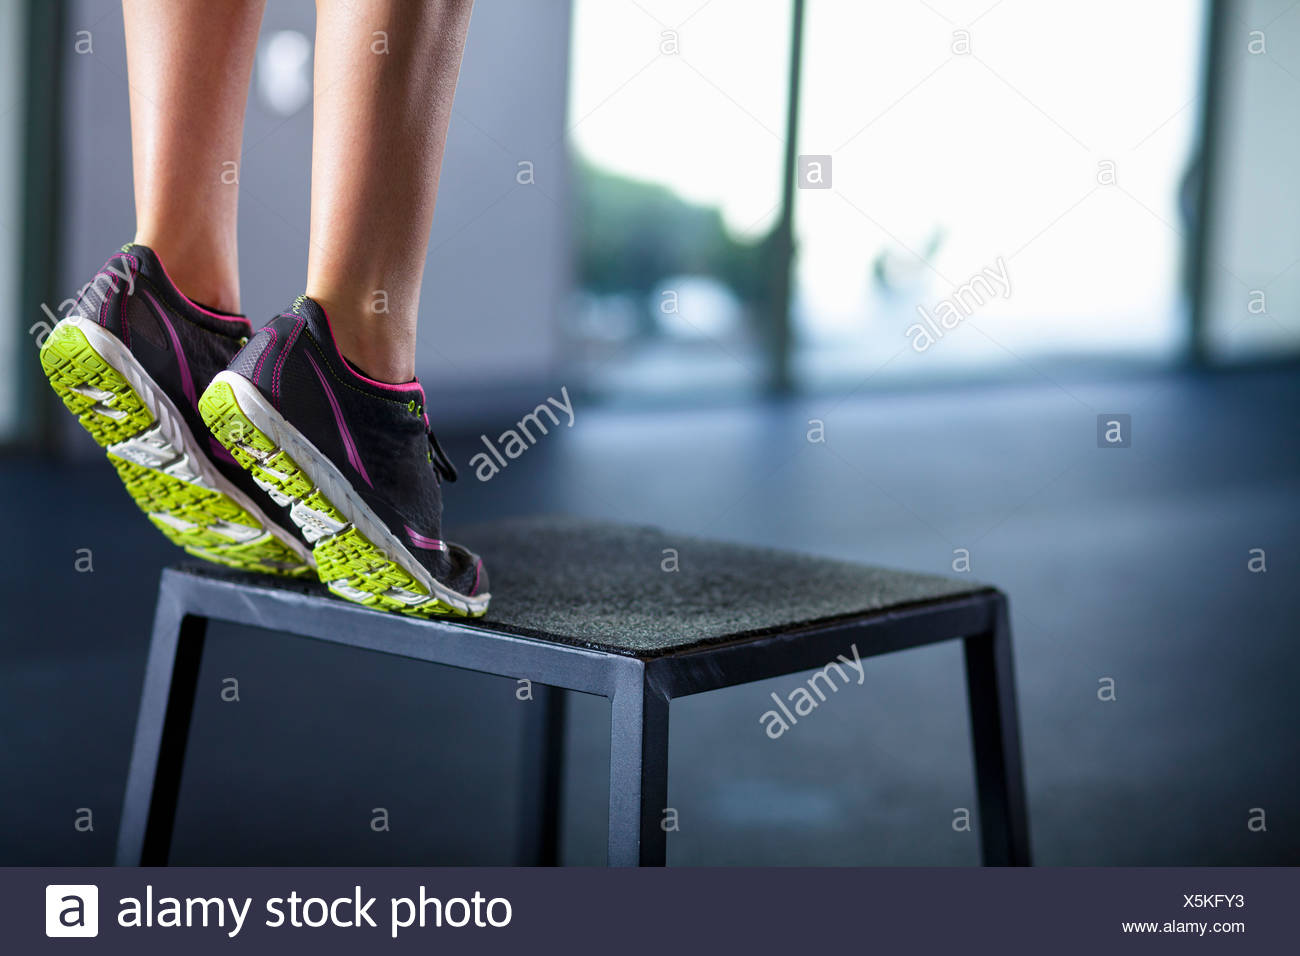 Young woman tiptoeing on edge of stool - Stock Image